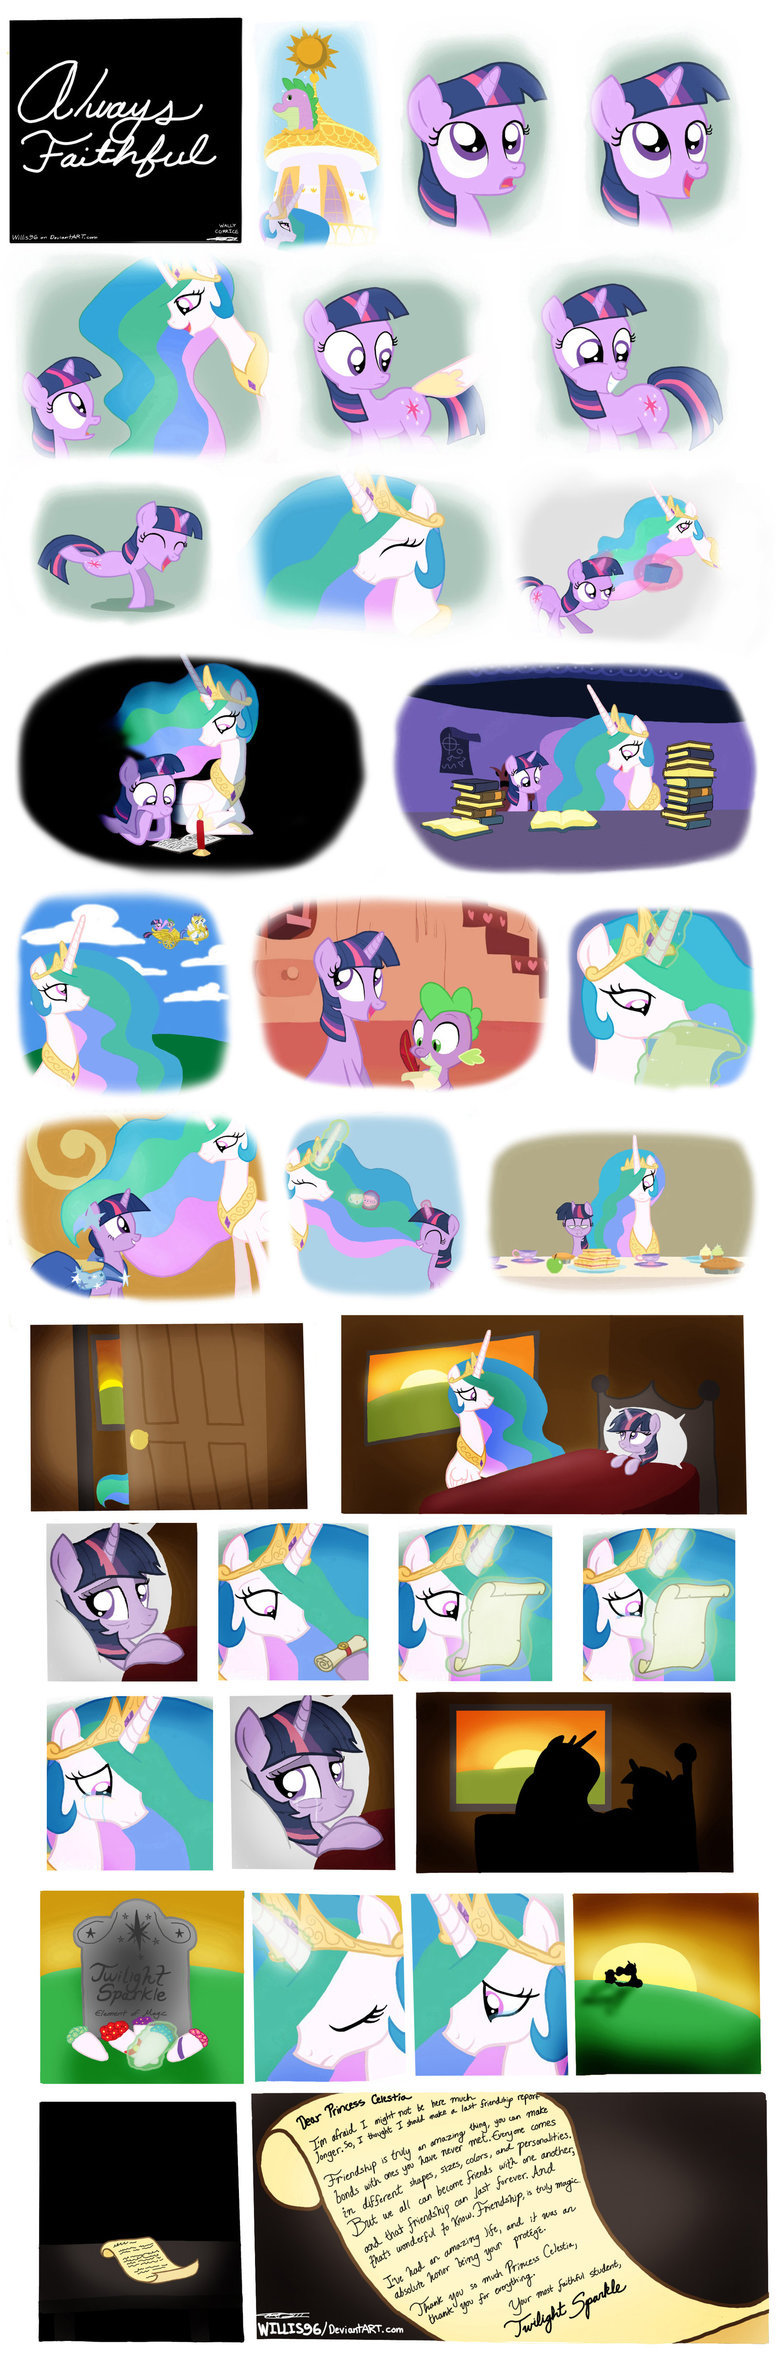 twilight sparkle. .. you wanna cry? read this right now, it is amazing! if you are a fan of mlp, but dont cry then you need to see a doctor :L